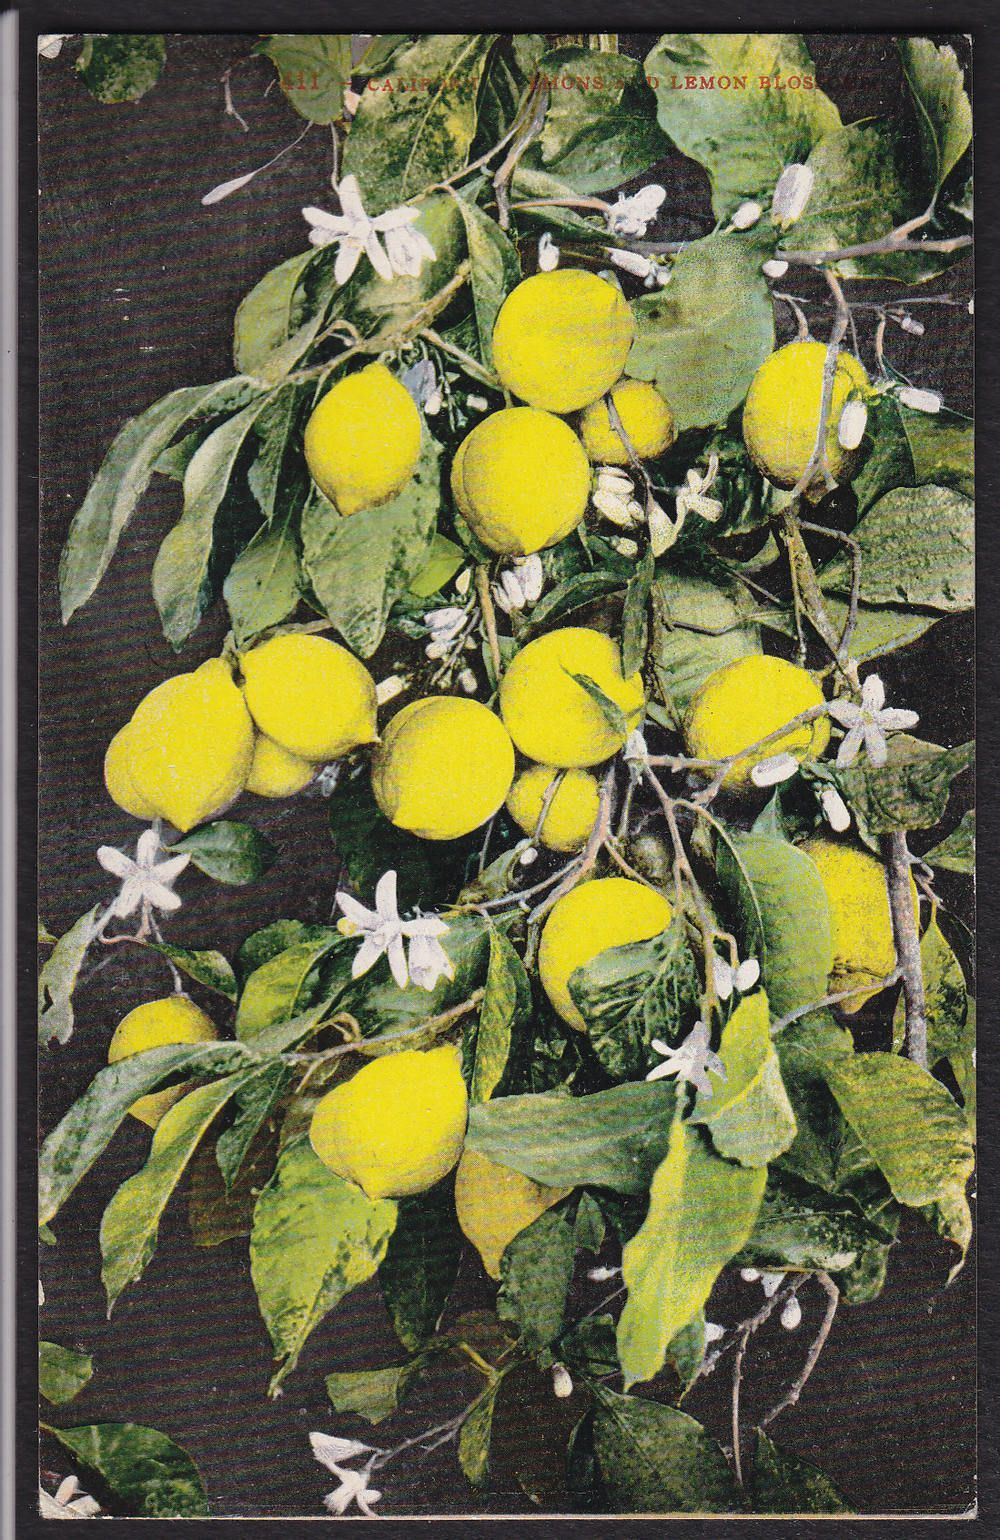 California-Lemon Tree-Blossoms -Antique Postcard | eBay